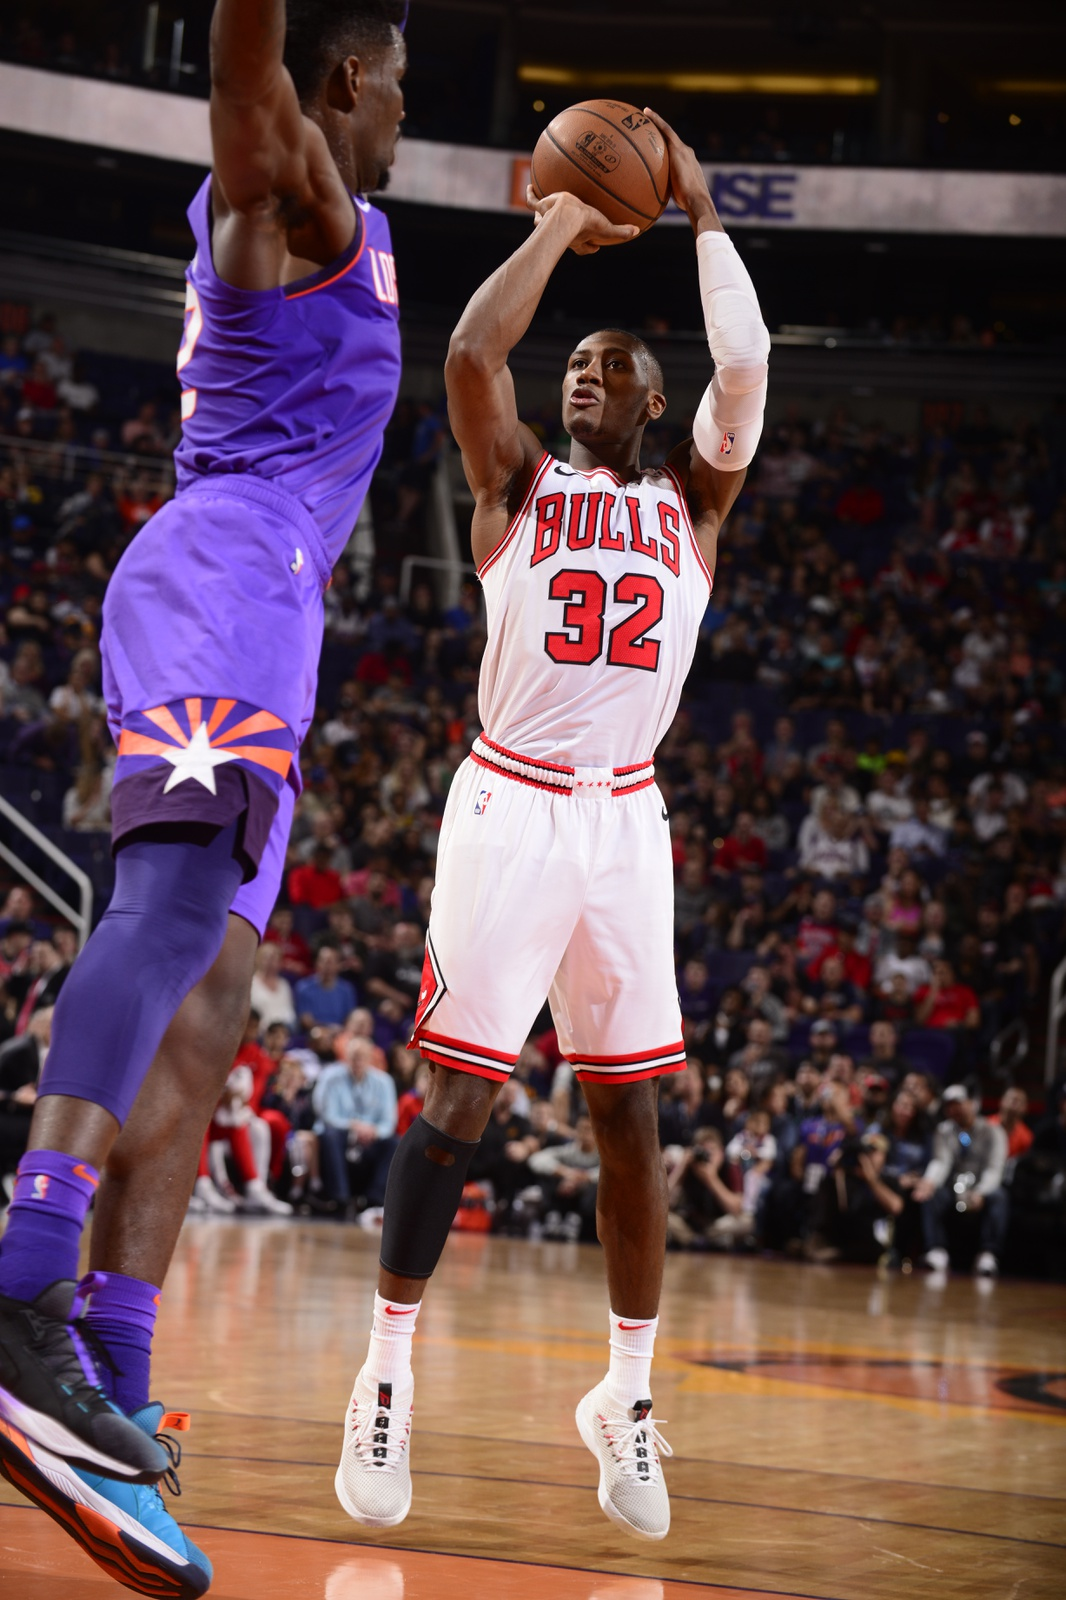 Kris Dunn #32 of the Chicago Bulls shoots the ball against the Phoenix Suns on March 18, 2019 at Talking Stick Resort Arena in Phoenix, Arizona.